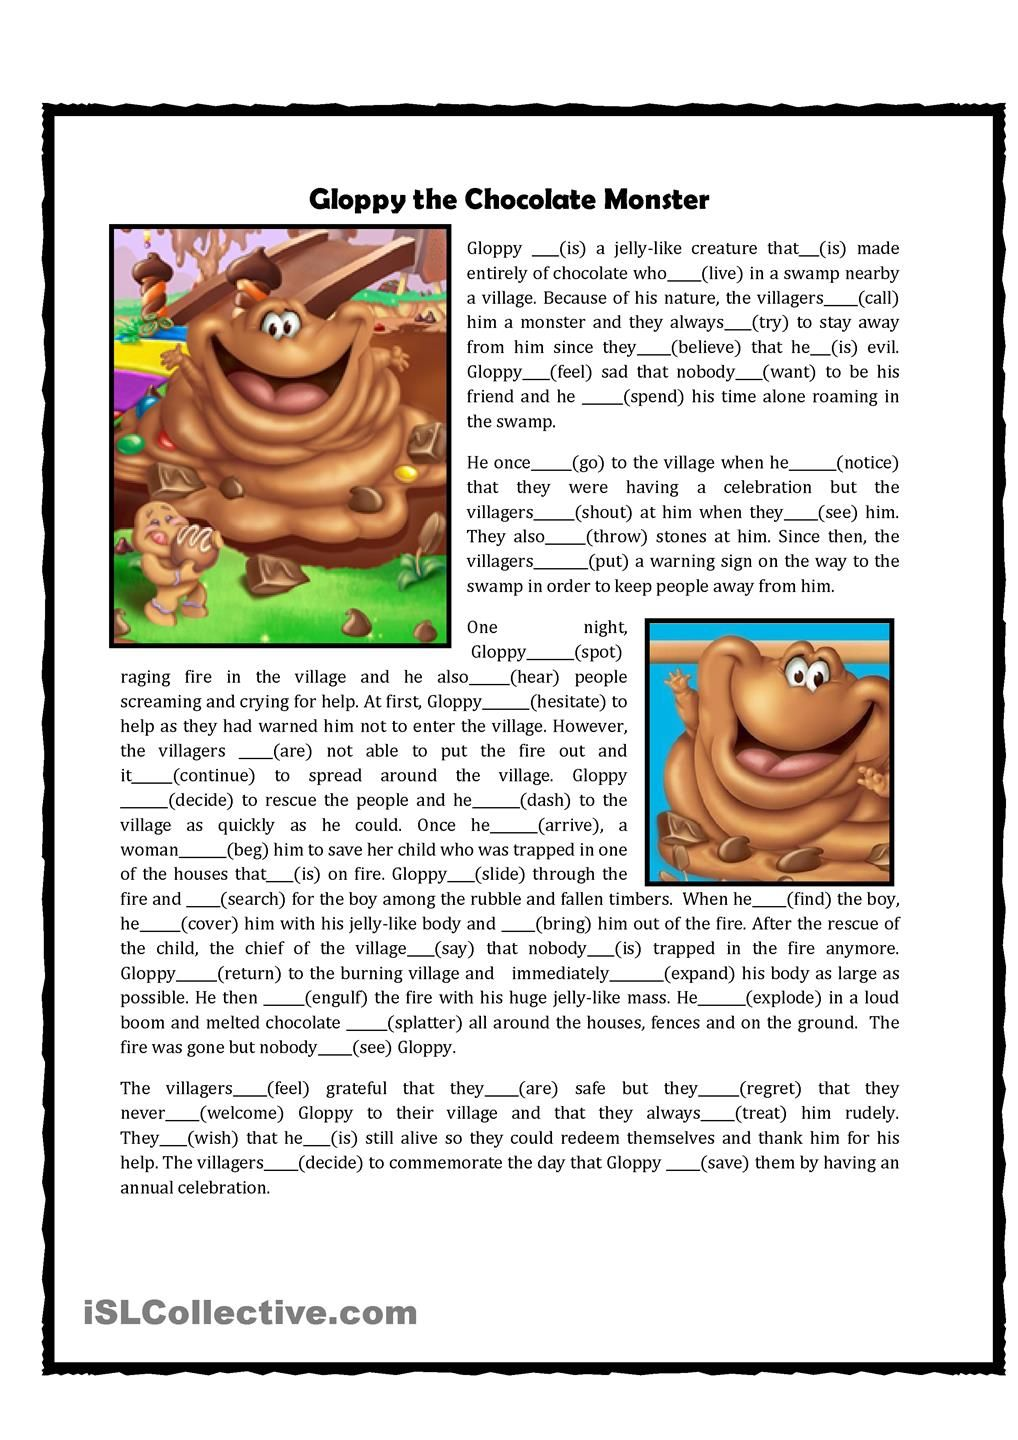 worksheet How Chocolate Is Made Worksheet candyland themed grammar exercise gloppy the chocolate monster worksheet free esl printable worksheets made by teachers